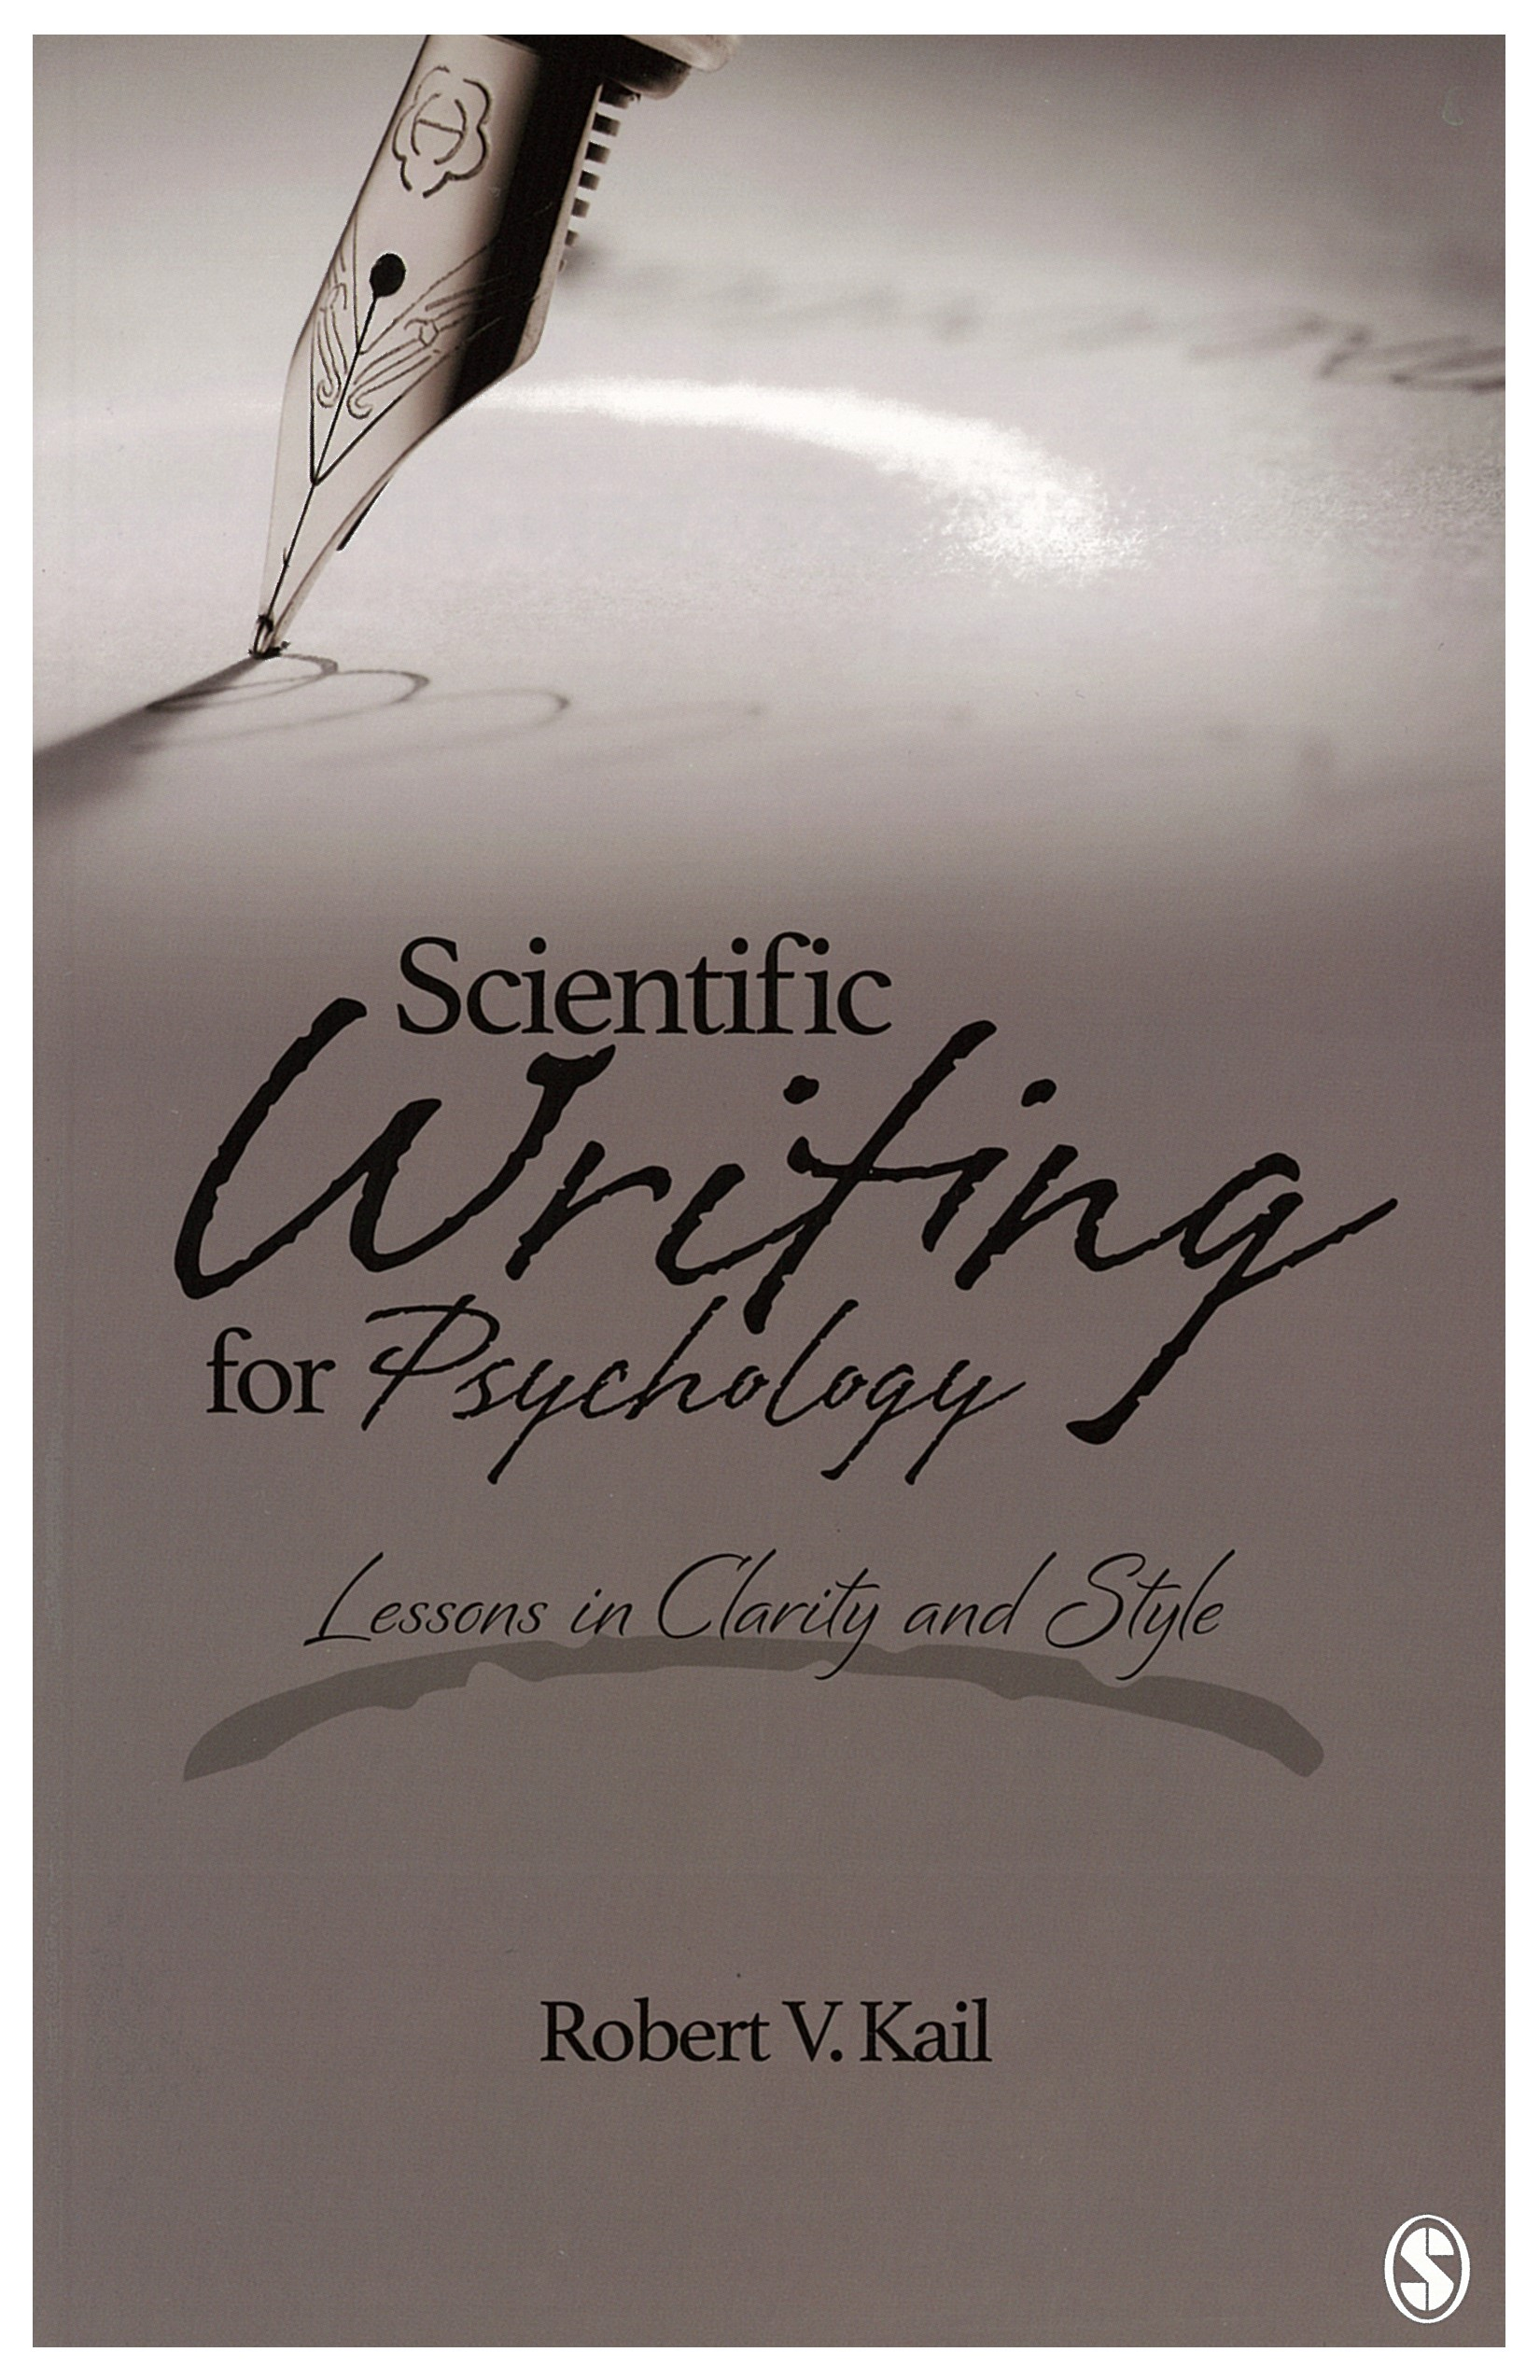 Psychology as a science essay